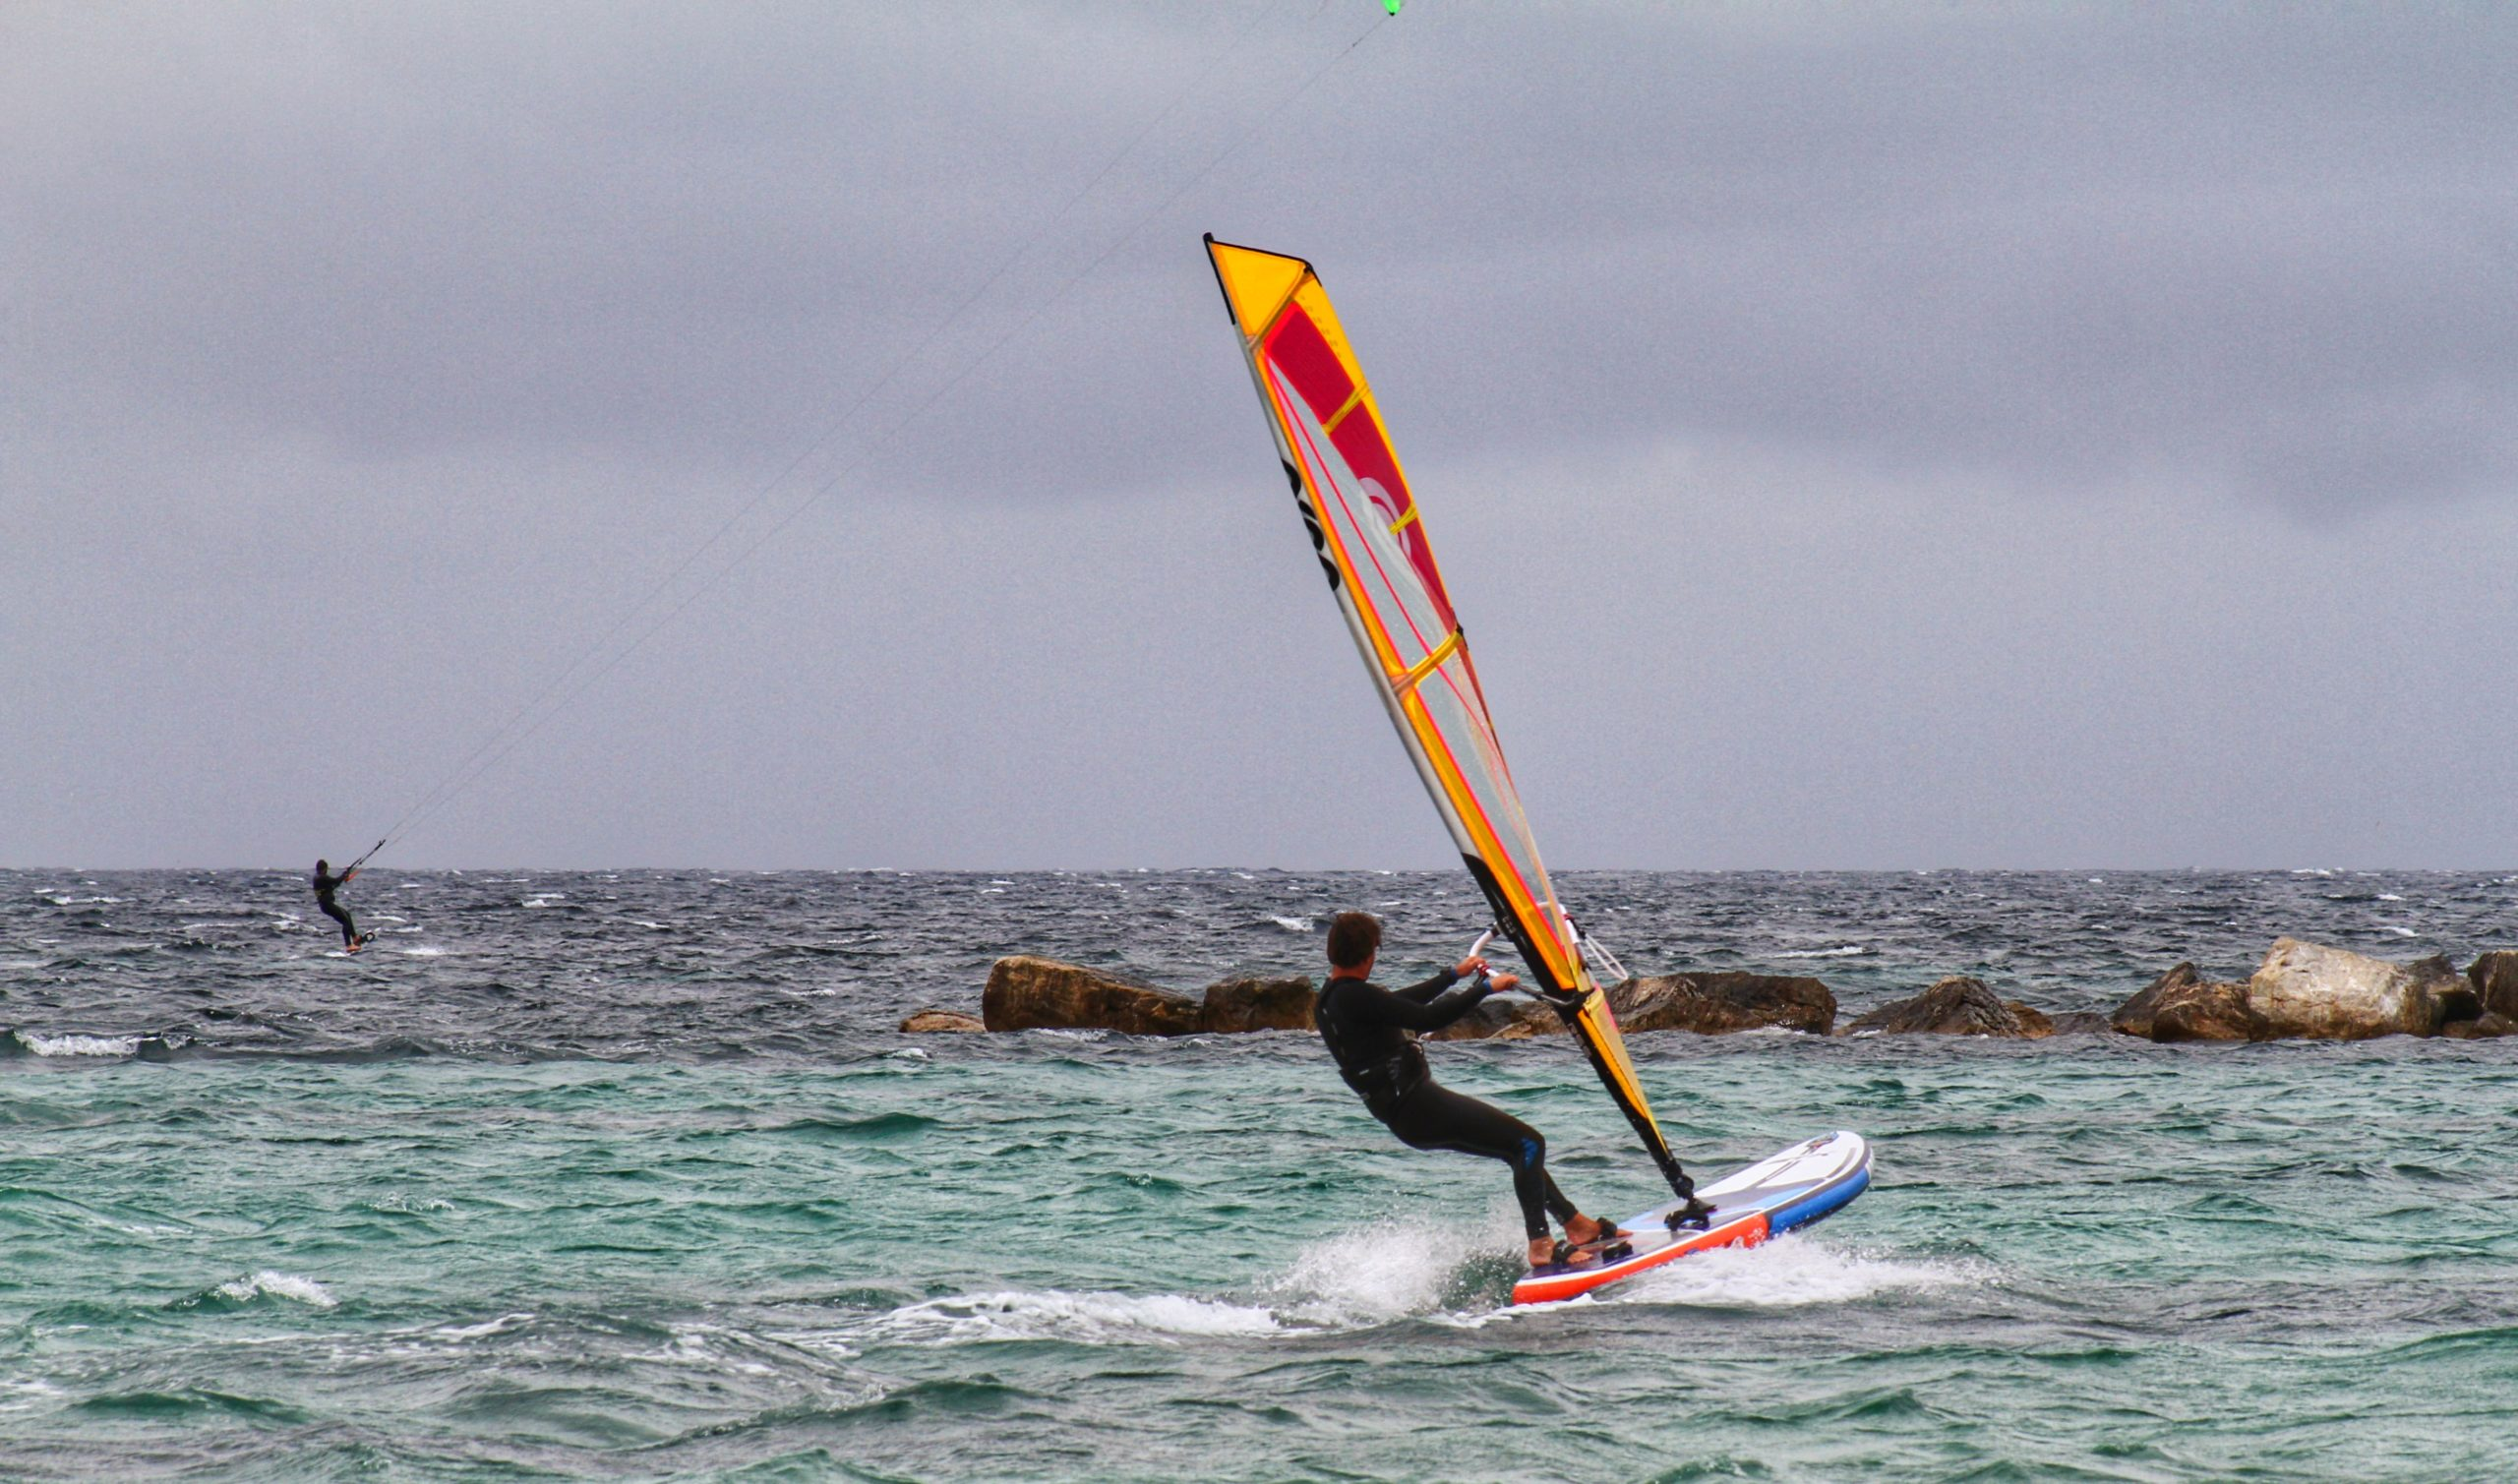 Windsurfing on the STX 280 Windsurf Board